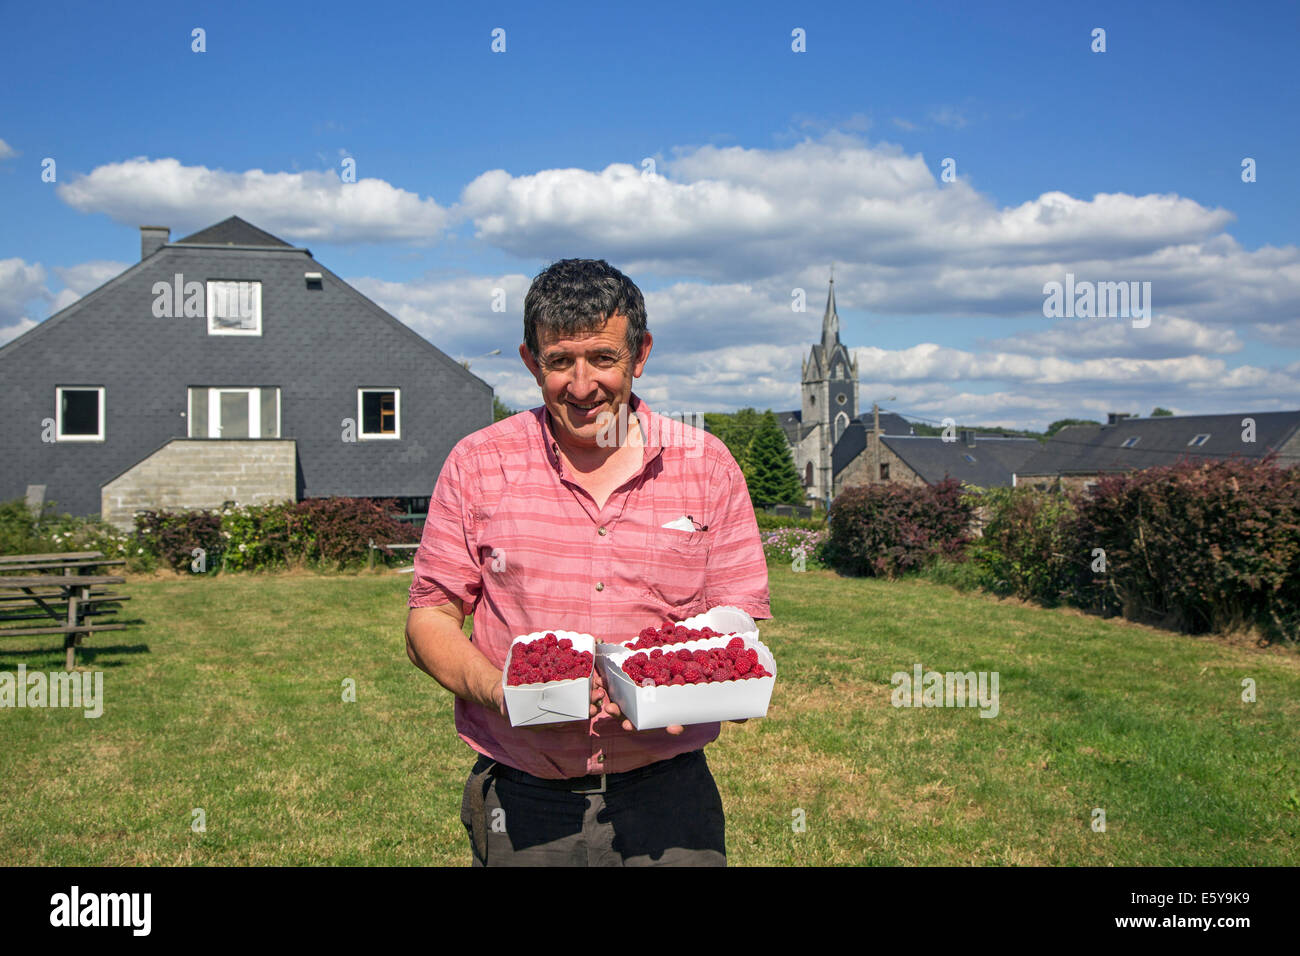 Man showing fresh-picked red raspberries (Rubus idaeus), local speciality at Daverdisse, Luxembourg, Belgian Ardennes, - Stock Image